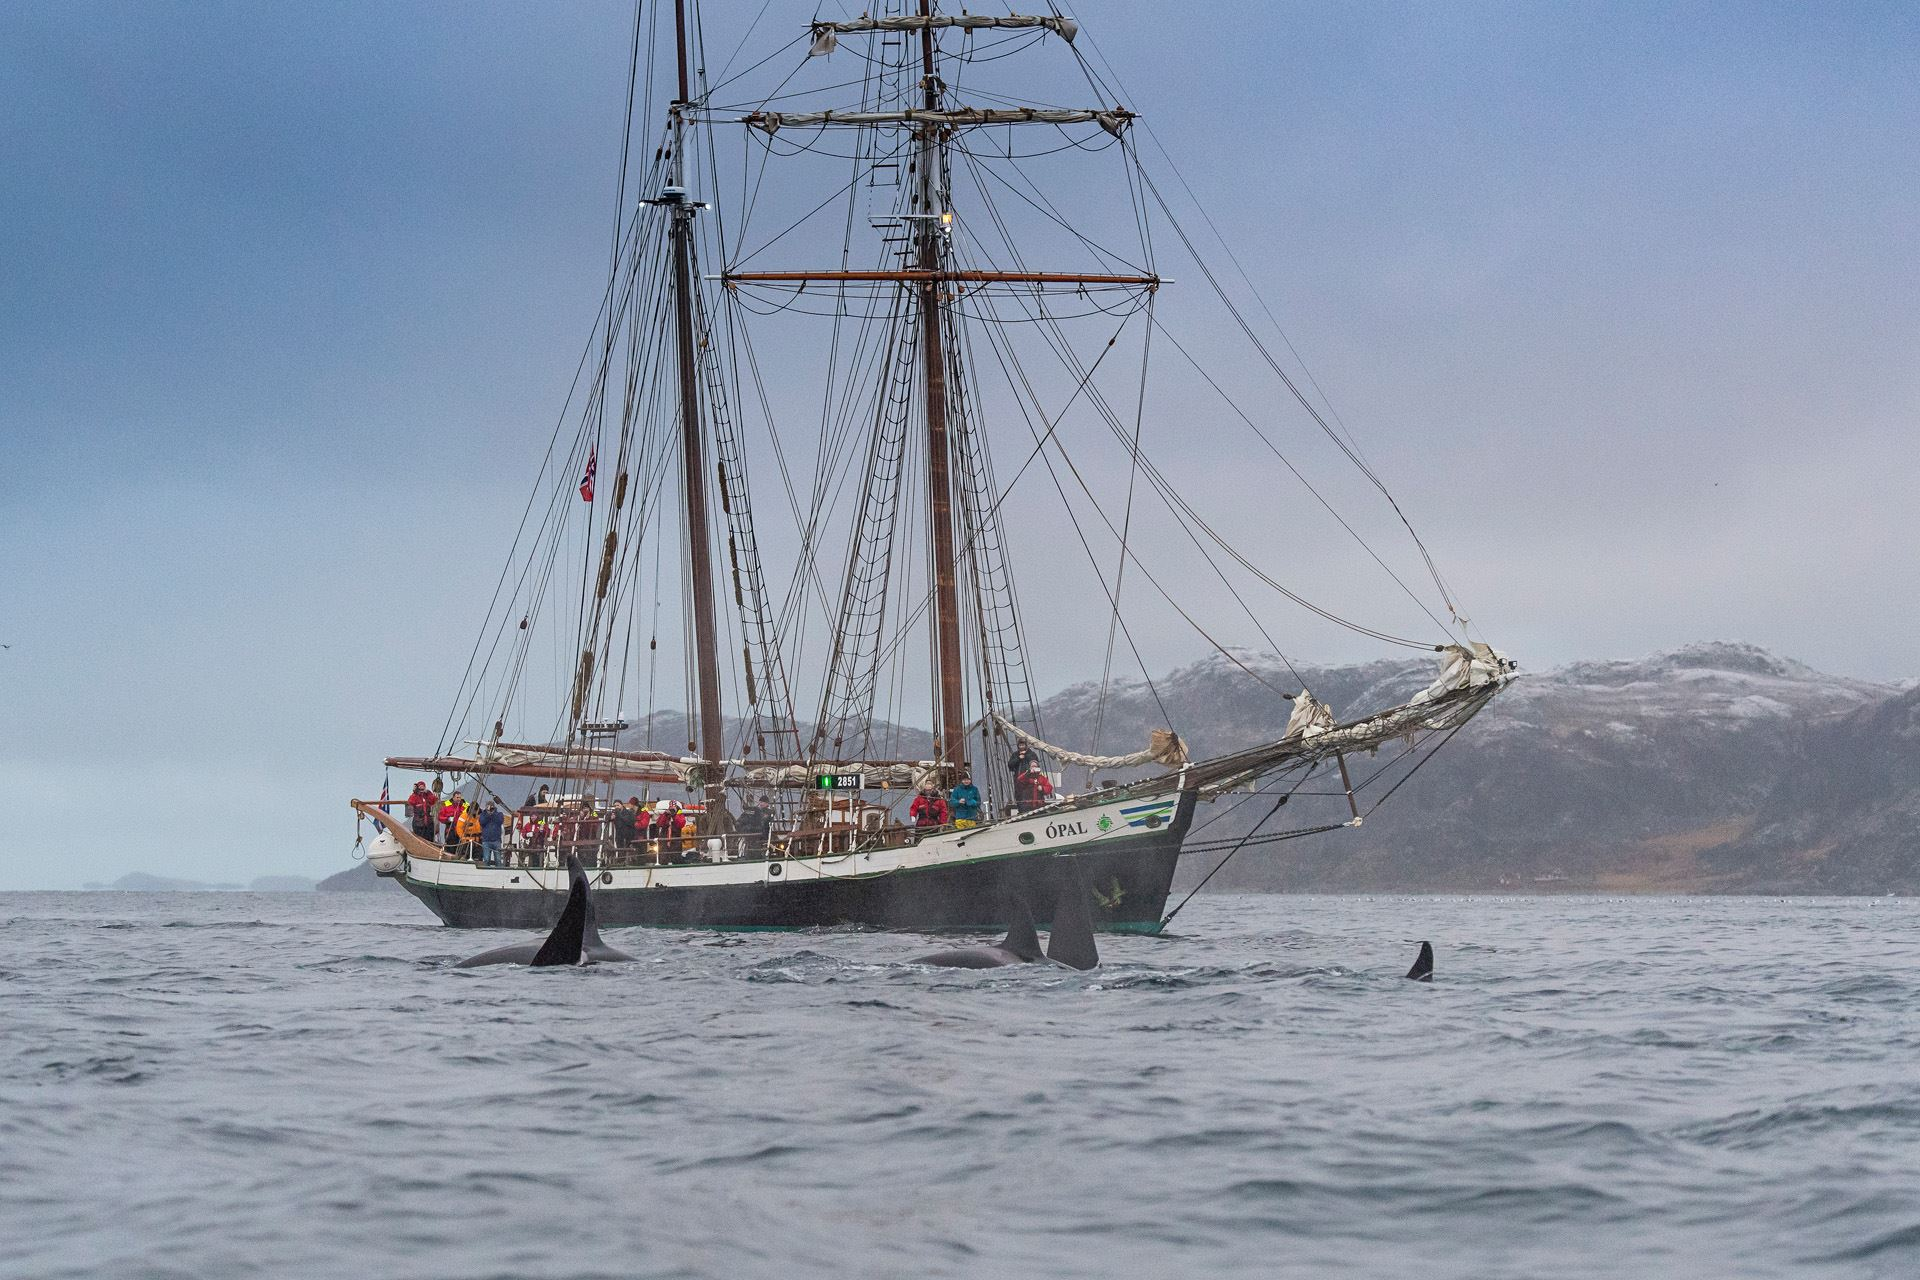 Silent whale watching - with the electric schooner Opal - North Sailing Norway